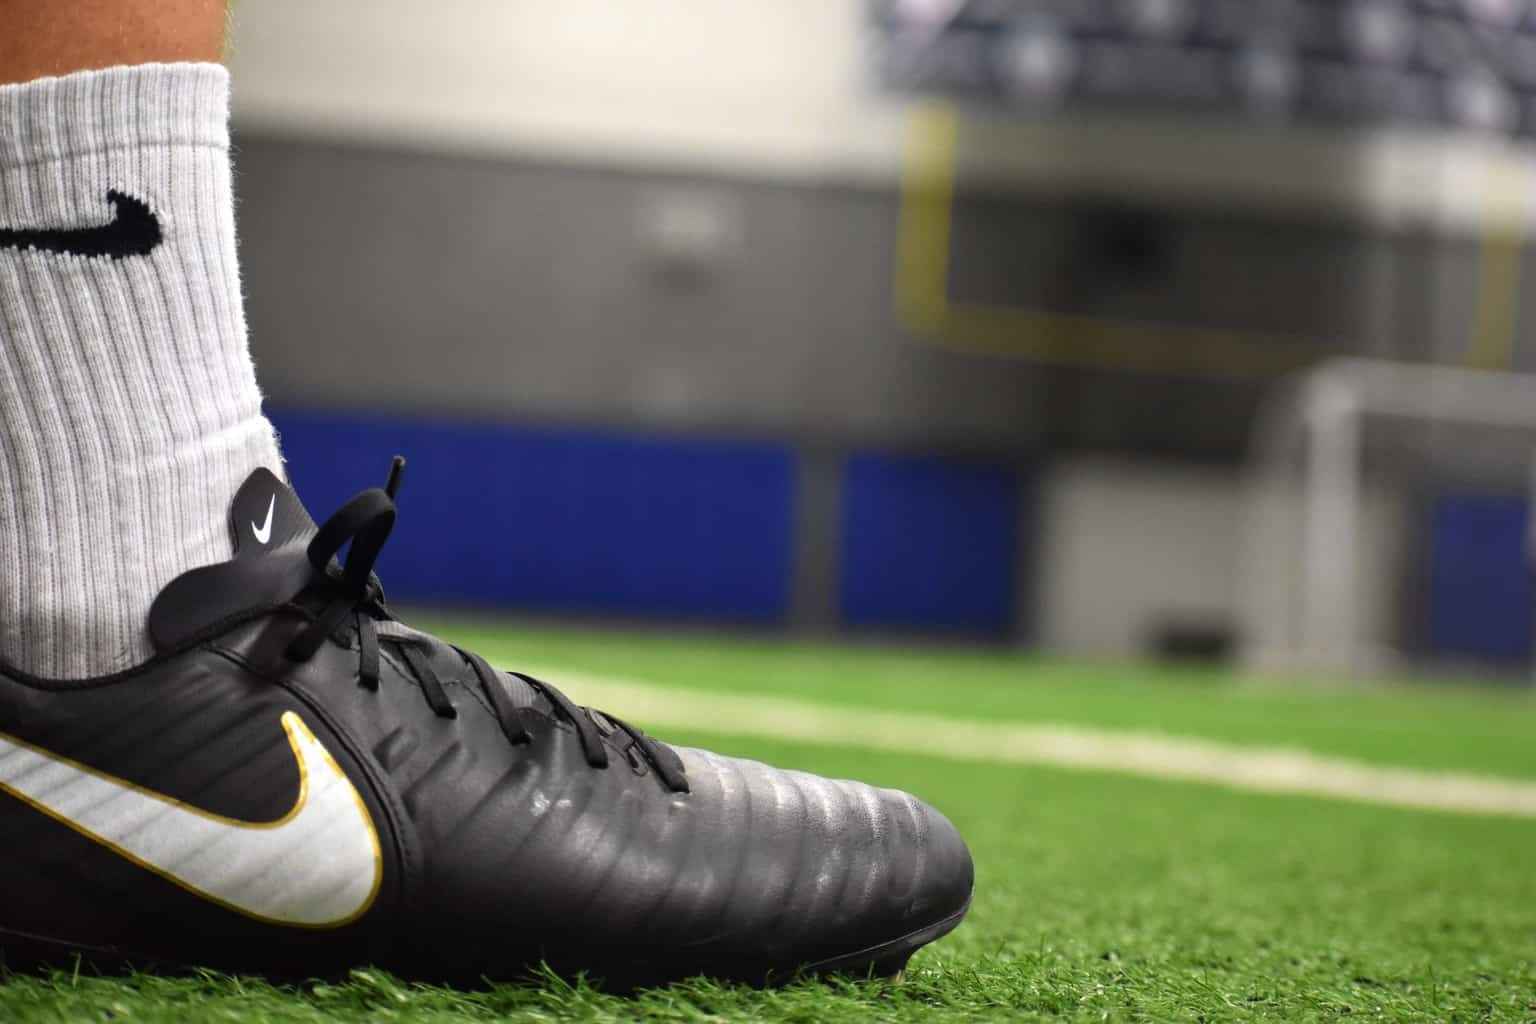 Close up side view of a black Nike Soccer Shpe